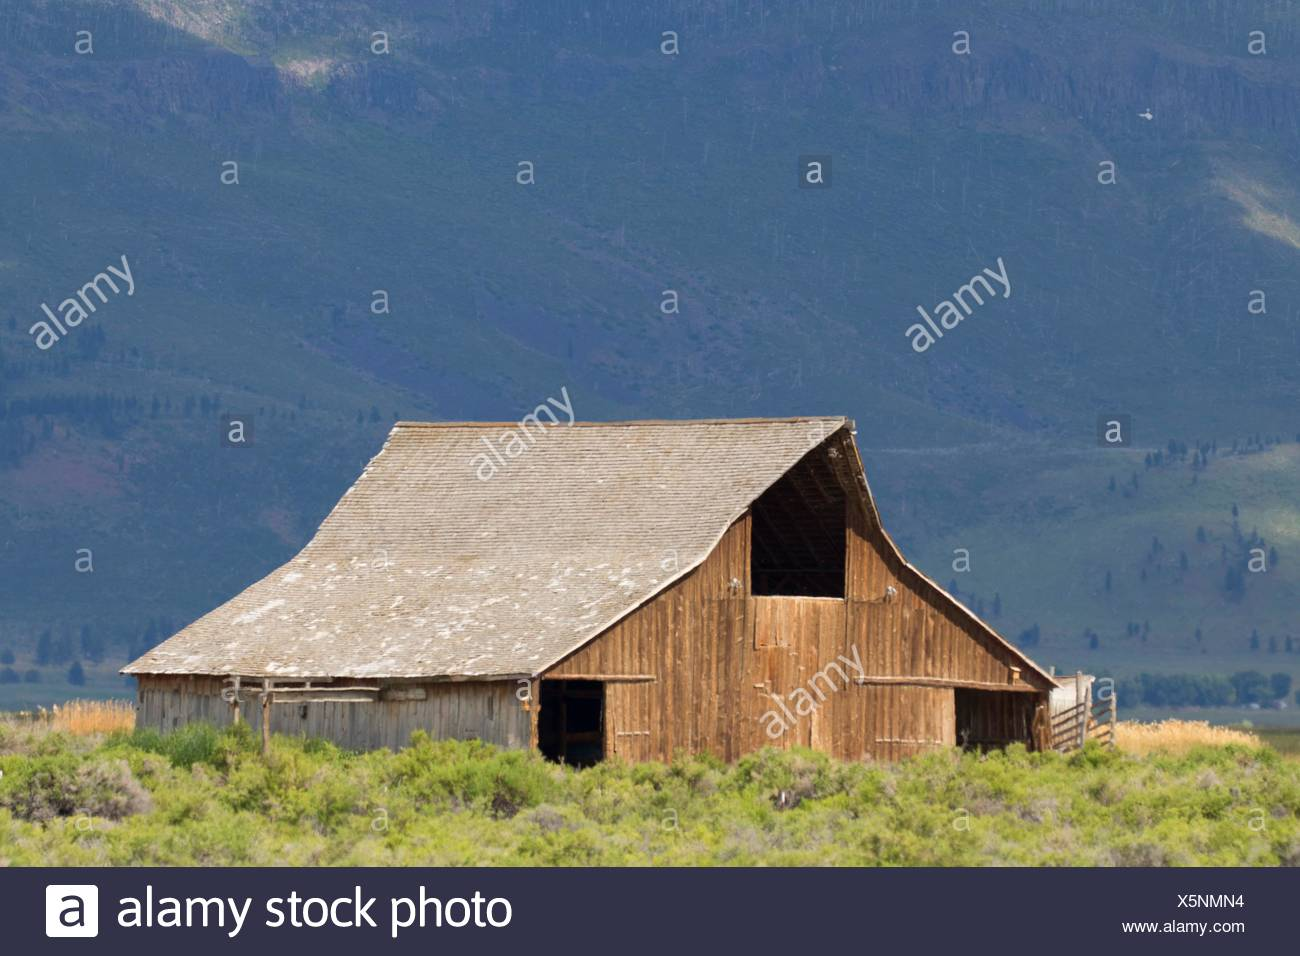 River Ranch barn, Summer Lake Wildlife Area, Oregon Outback Scenic Byway, Oregon. - Stock Image